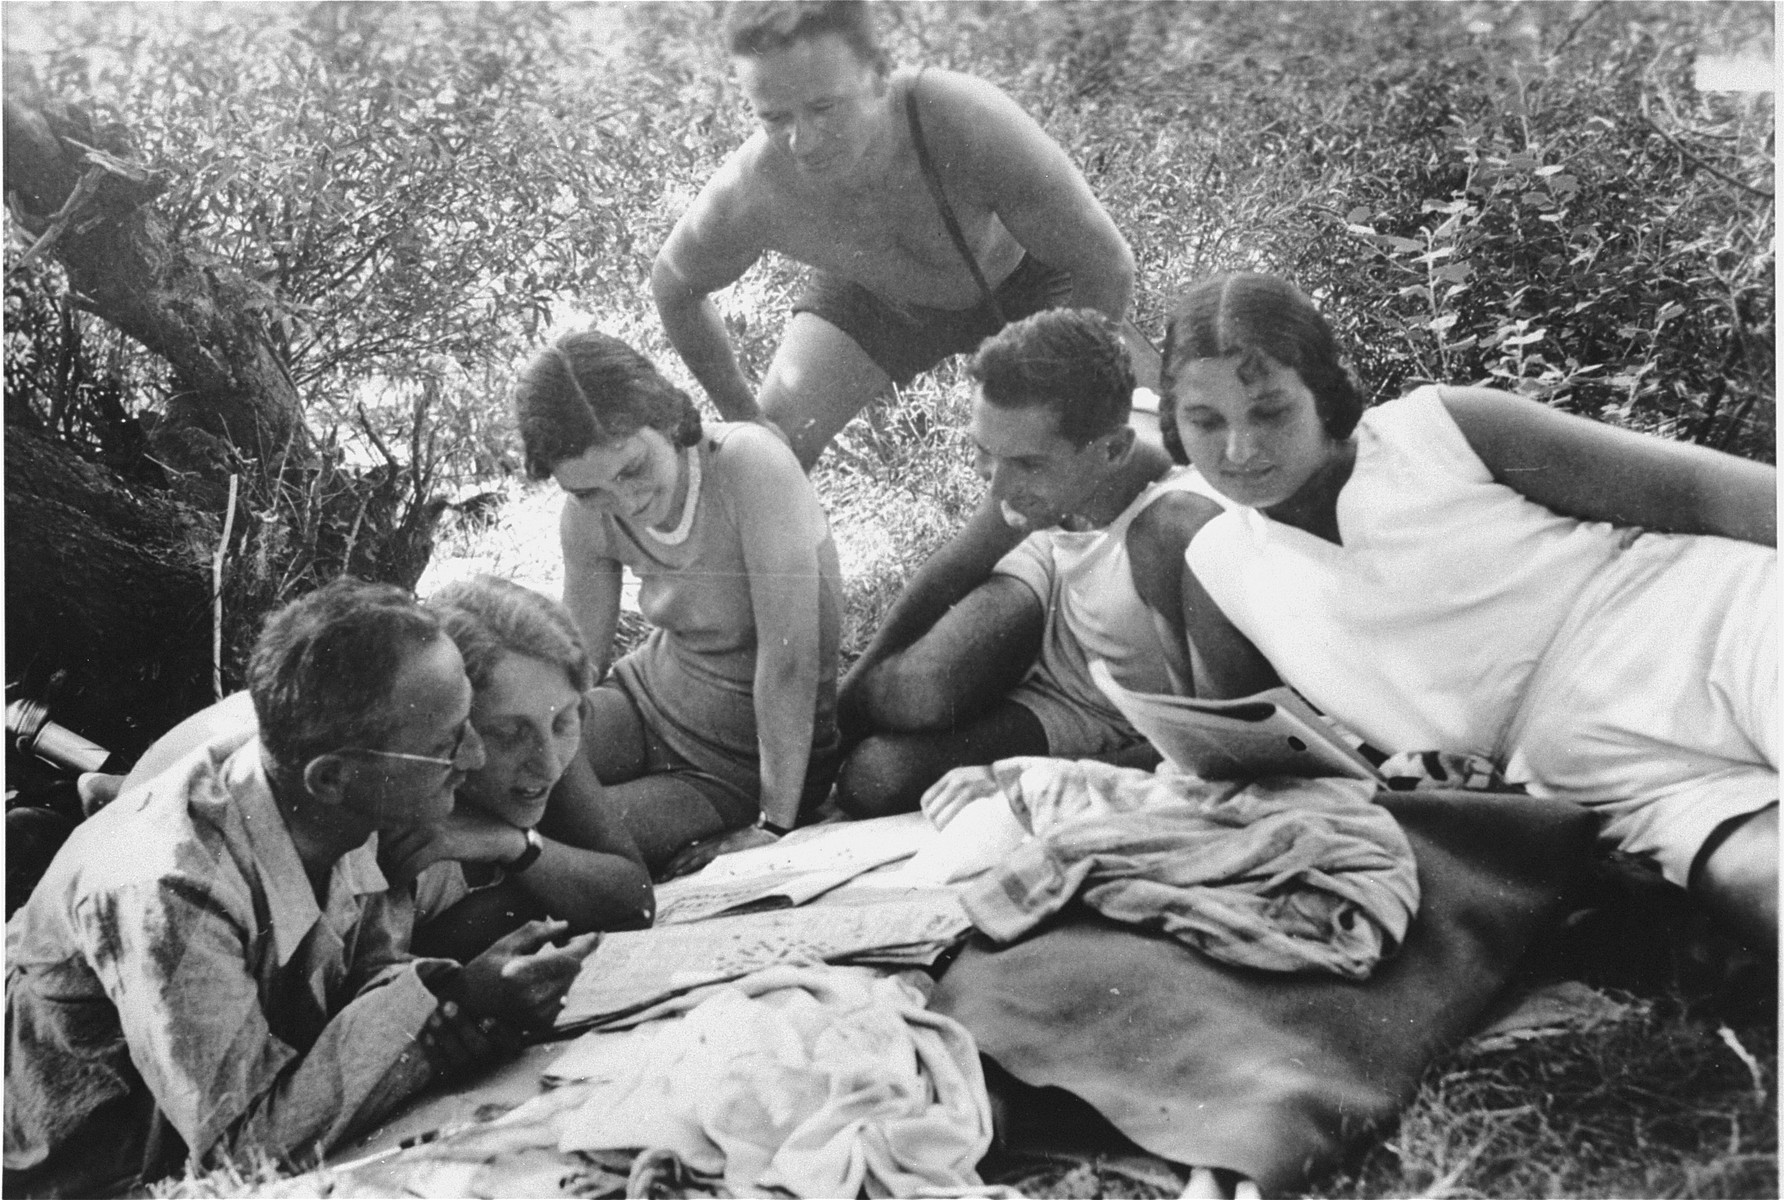 Members of the Pick family enjoy an outing in the Dobogoko mountains near Budapest.    Pictured from left to right are: unknown, Gita Pick, Erzsebet Pick, Laszlo Pick, Jolan Pick.  Standing behind them is Jozsef Szalai.